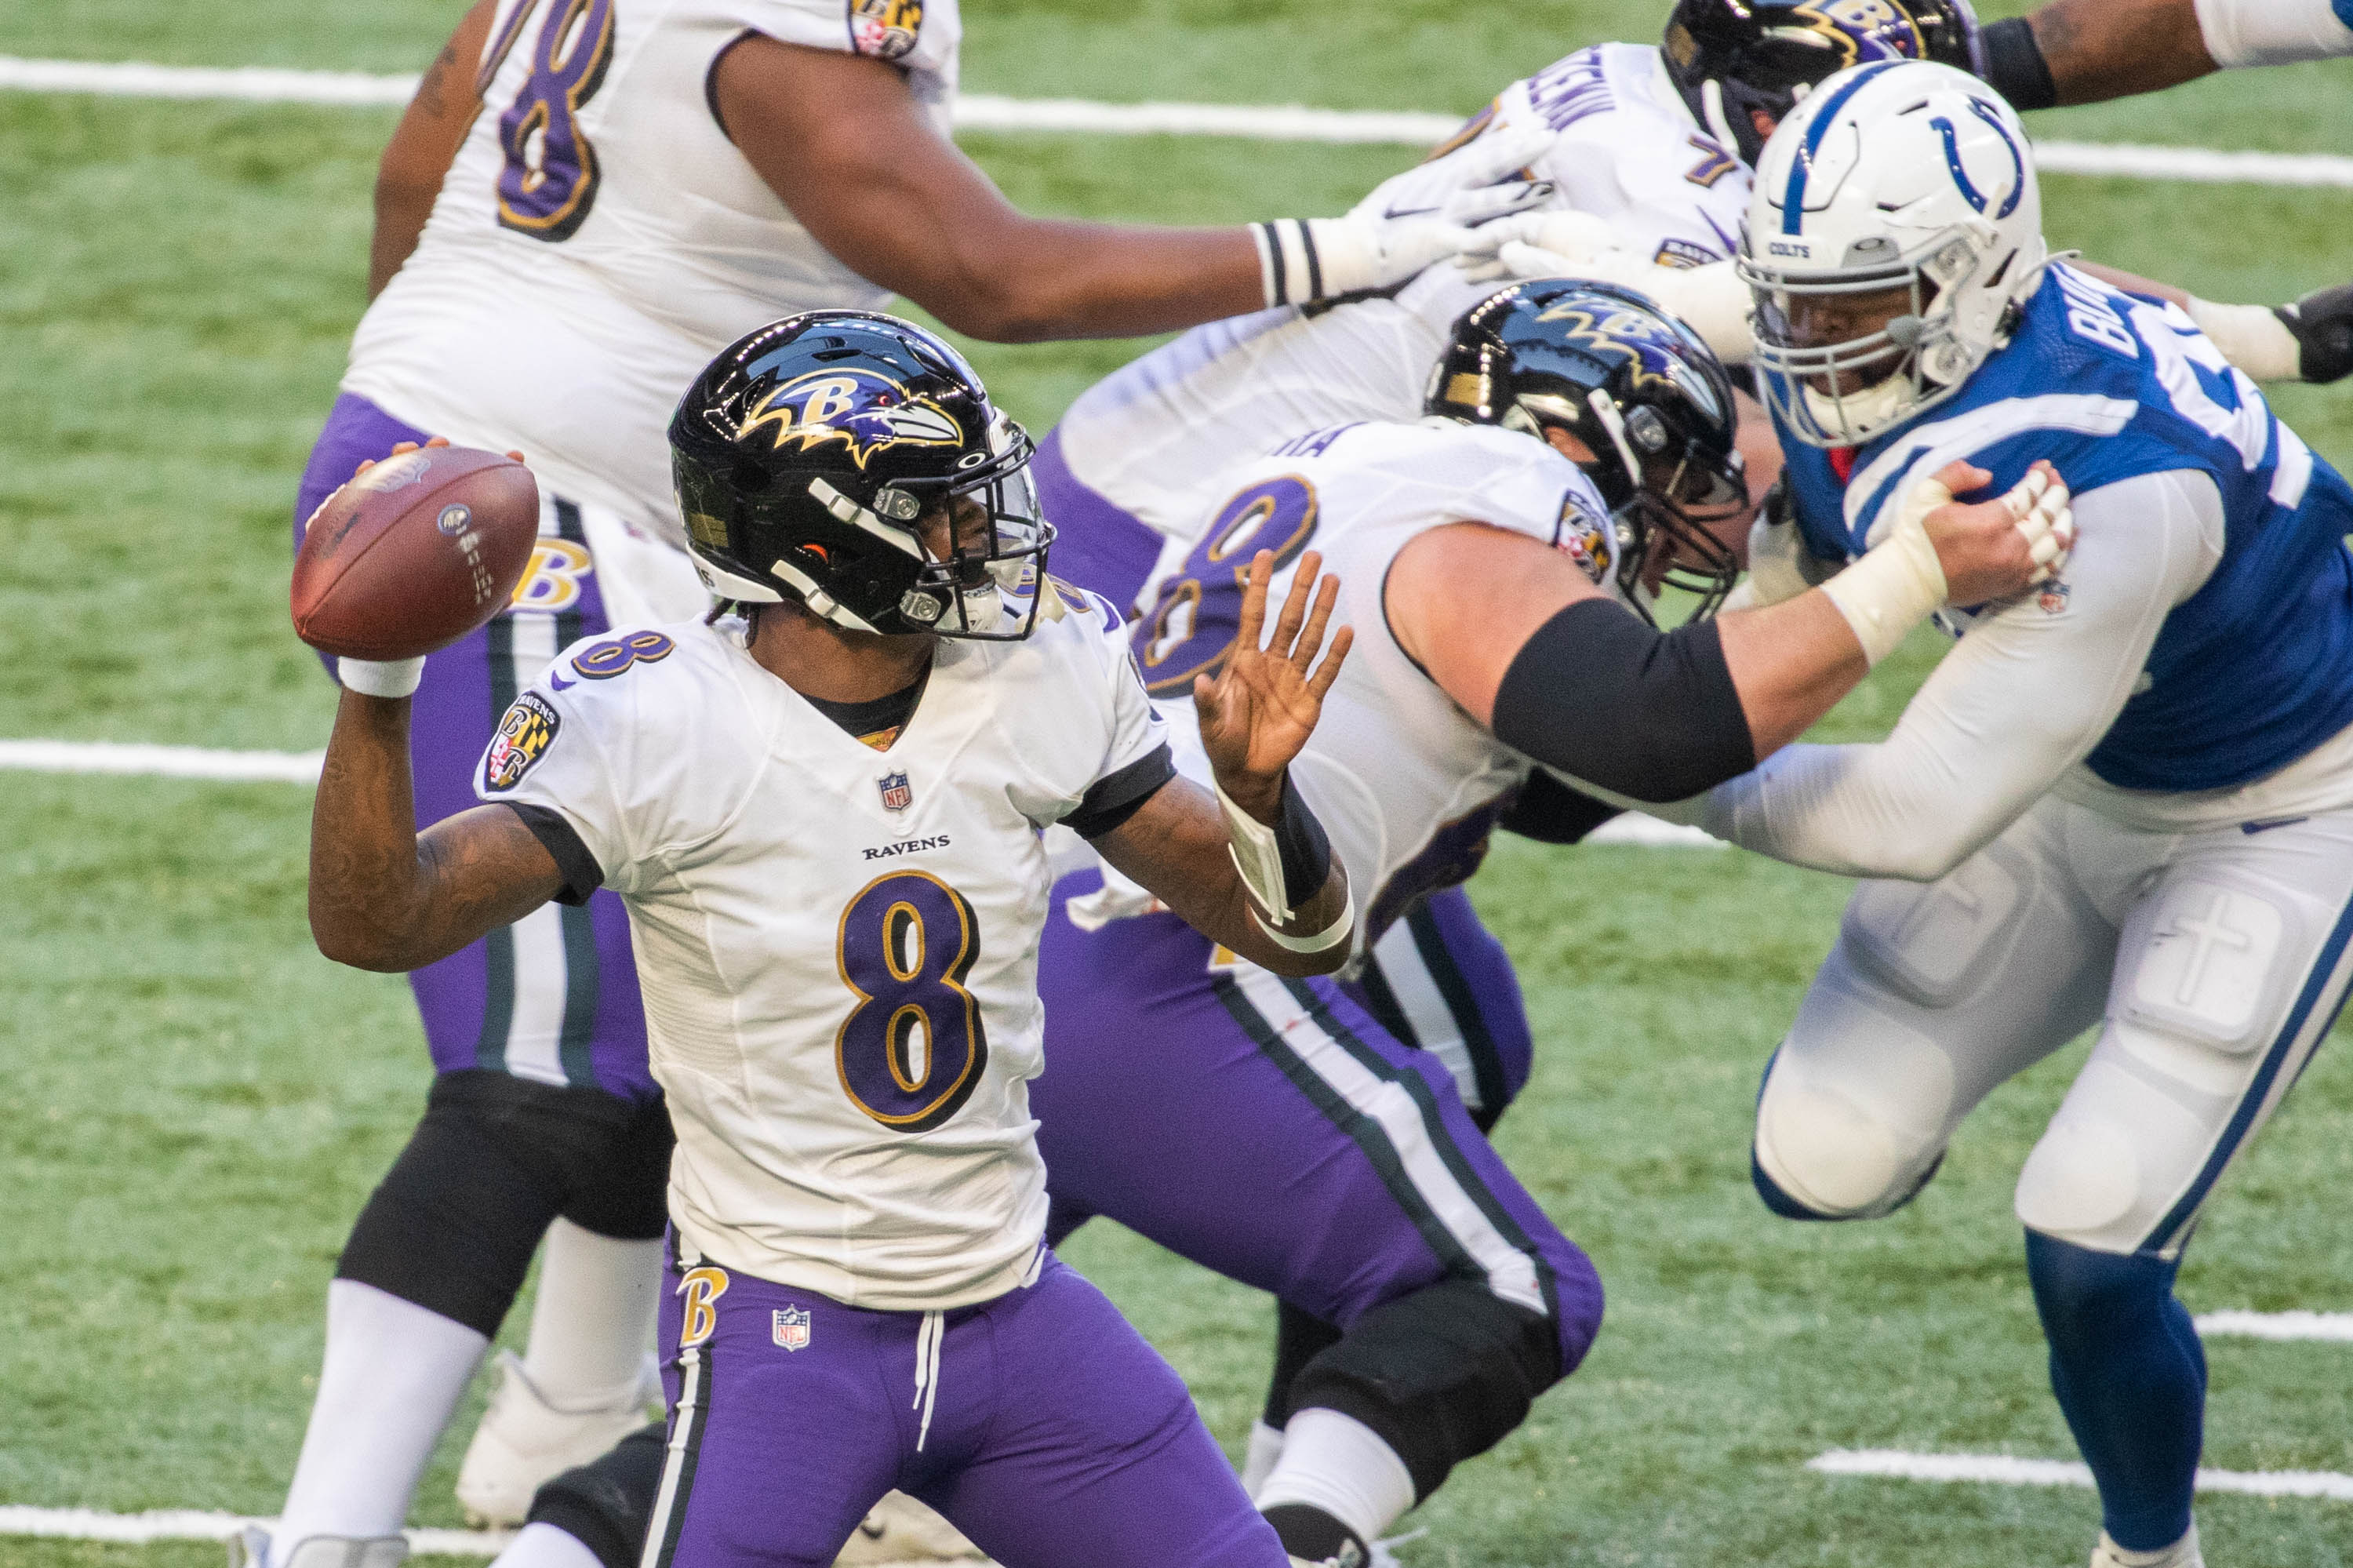 Betting trends nfl week 10 power julie bettinger at lccc